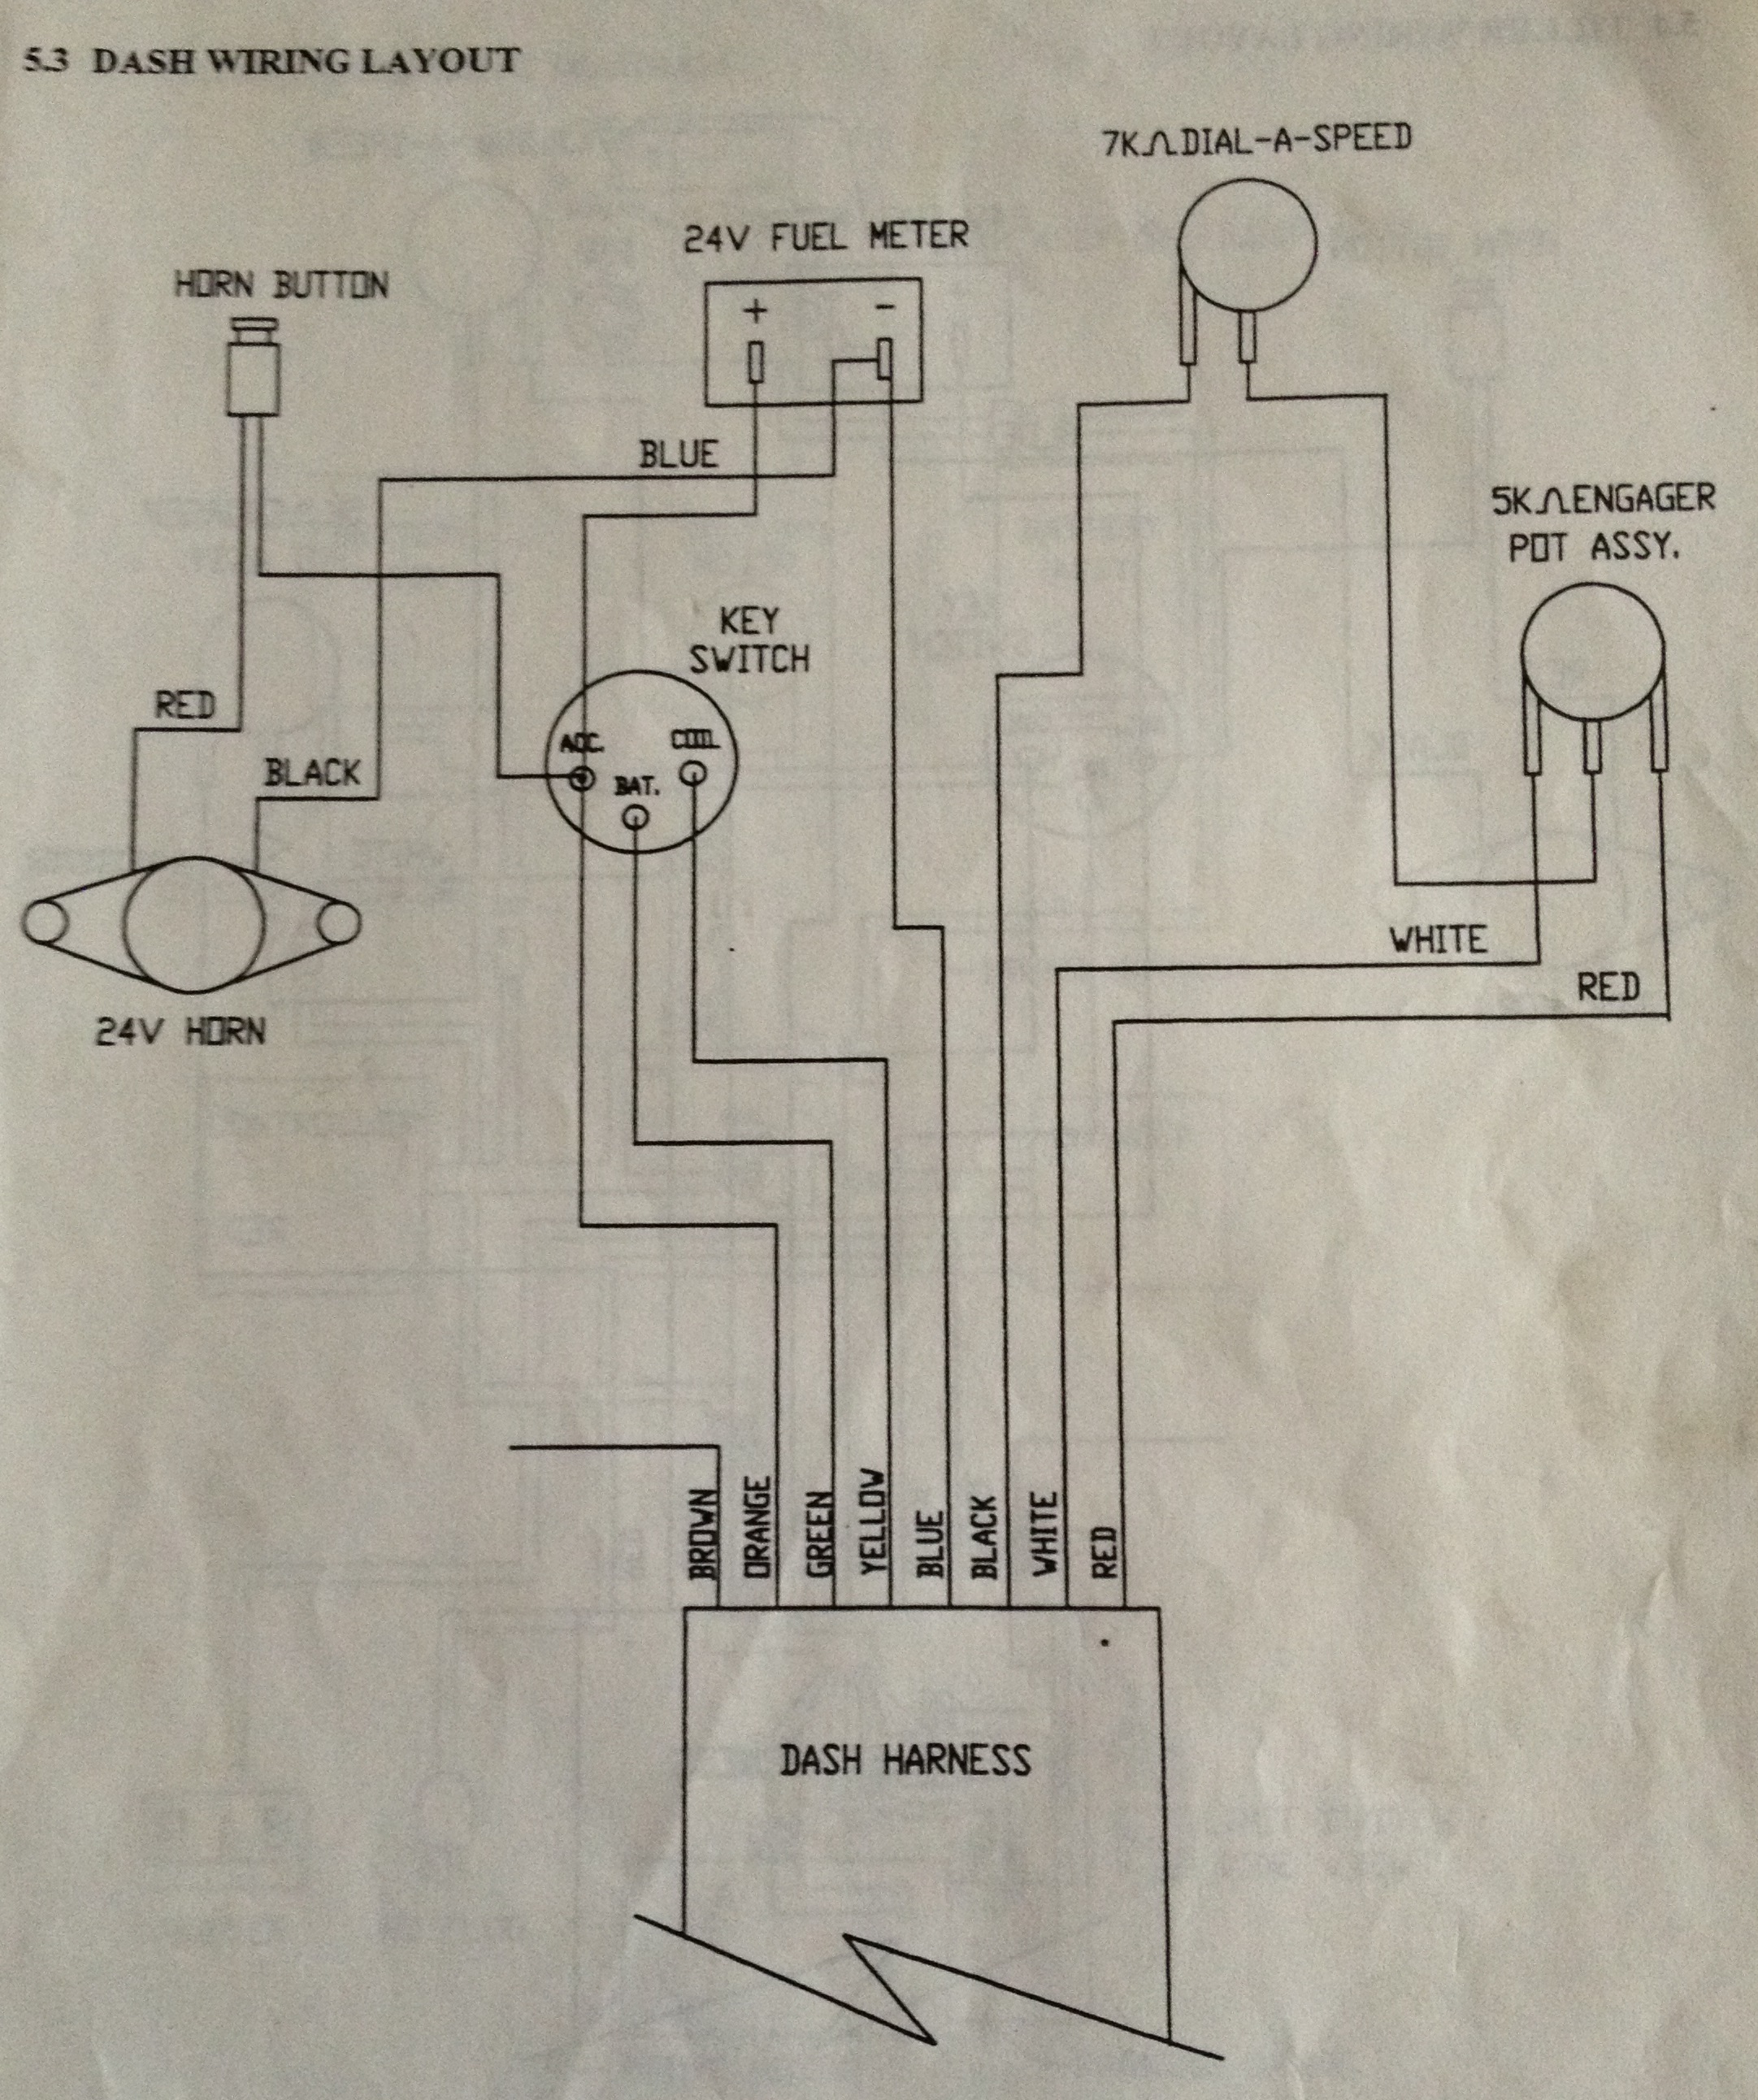 small resolution of jazzy 600 wiring diagram wiring diagram str rascal battery wiring diagram rascal 600 wiring diagram